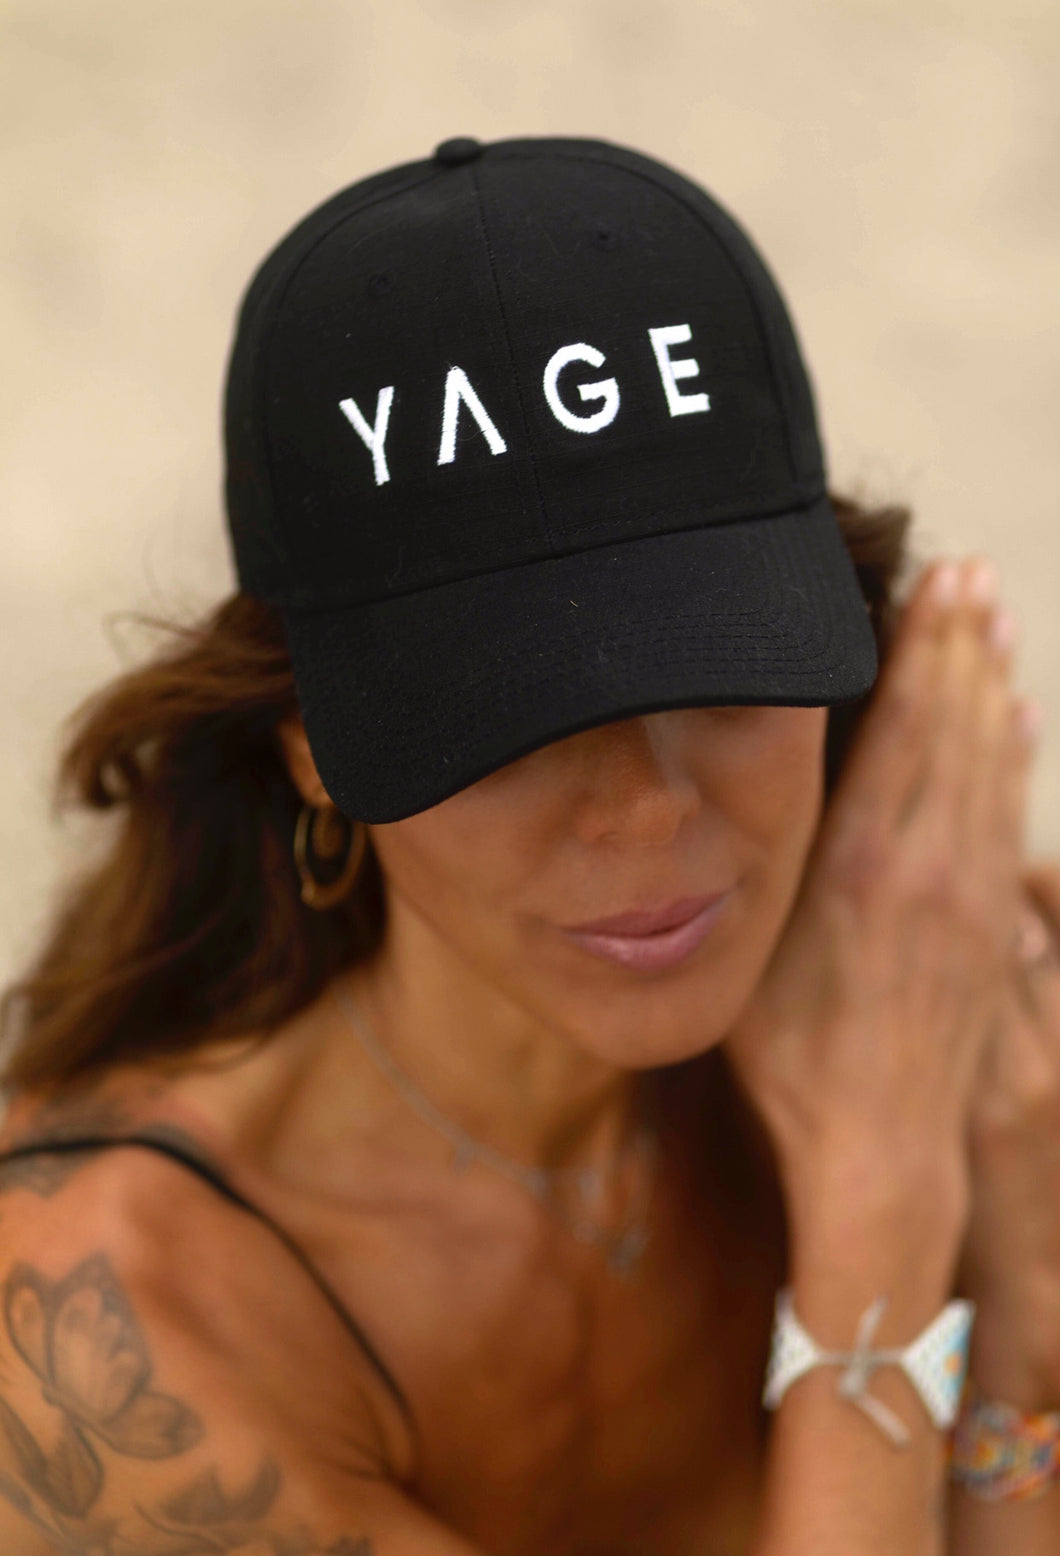 Black Yage Hat